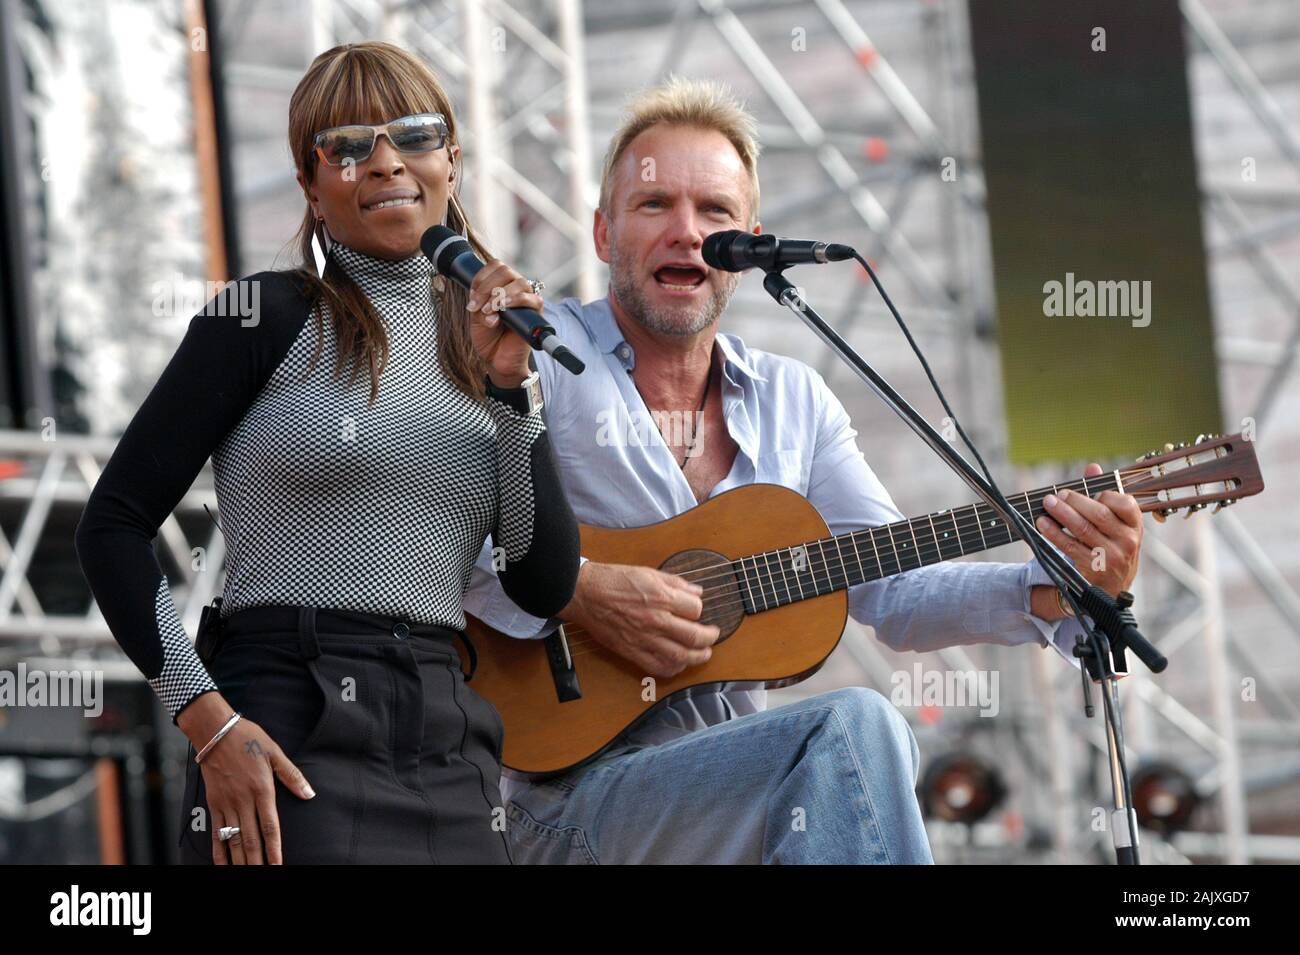 """Verona Italy 09/20/2003, Arena : Mary J. Blige with Sting during the soundcheck before the concert of the musical event """"Festivalbar 2003"""". Stock Photo"""